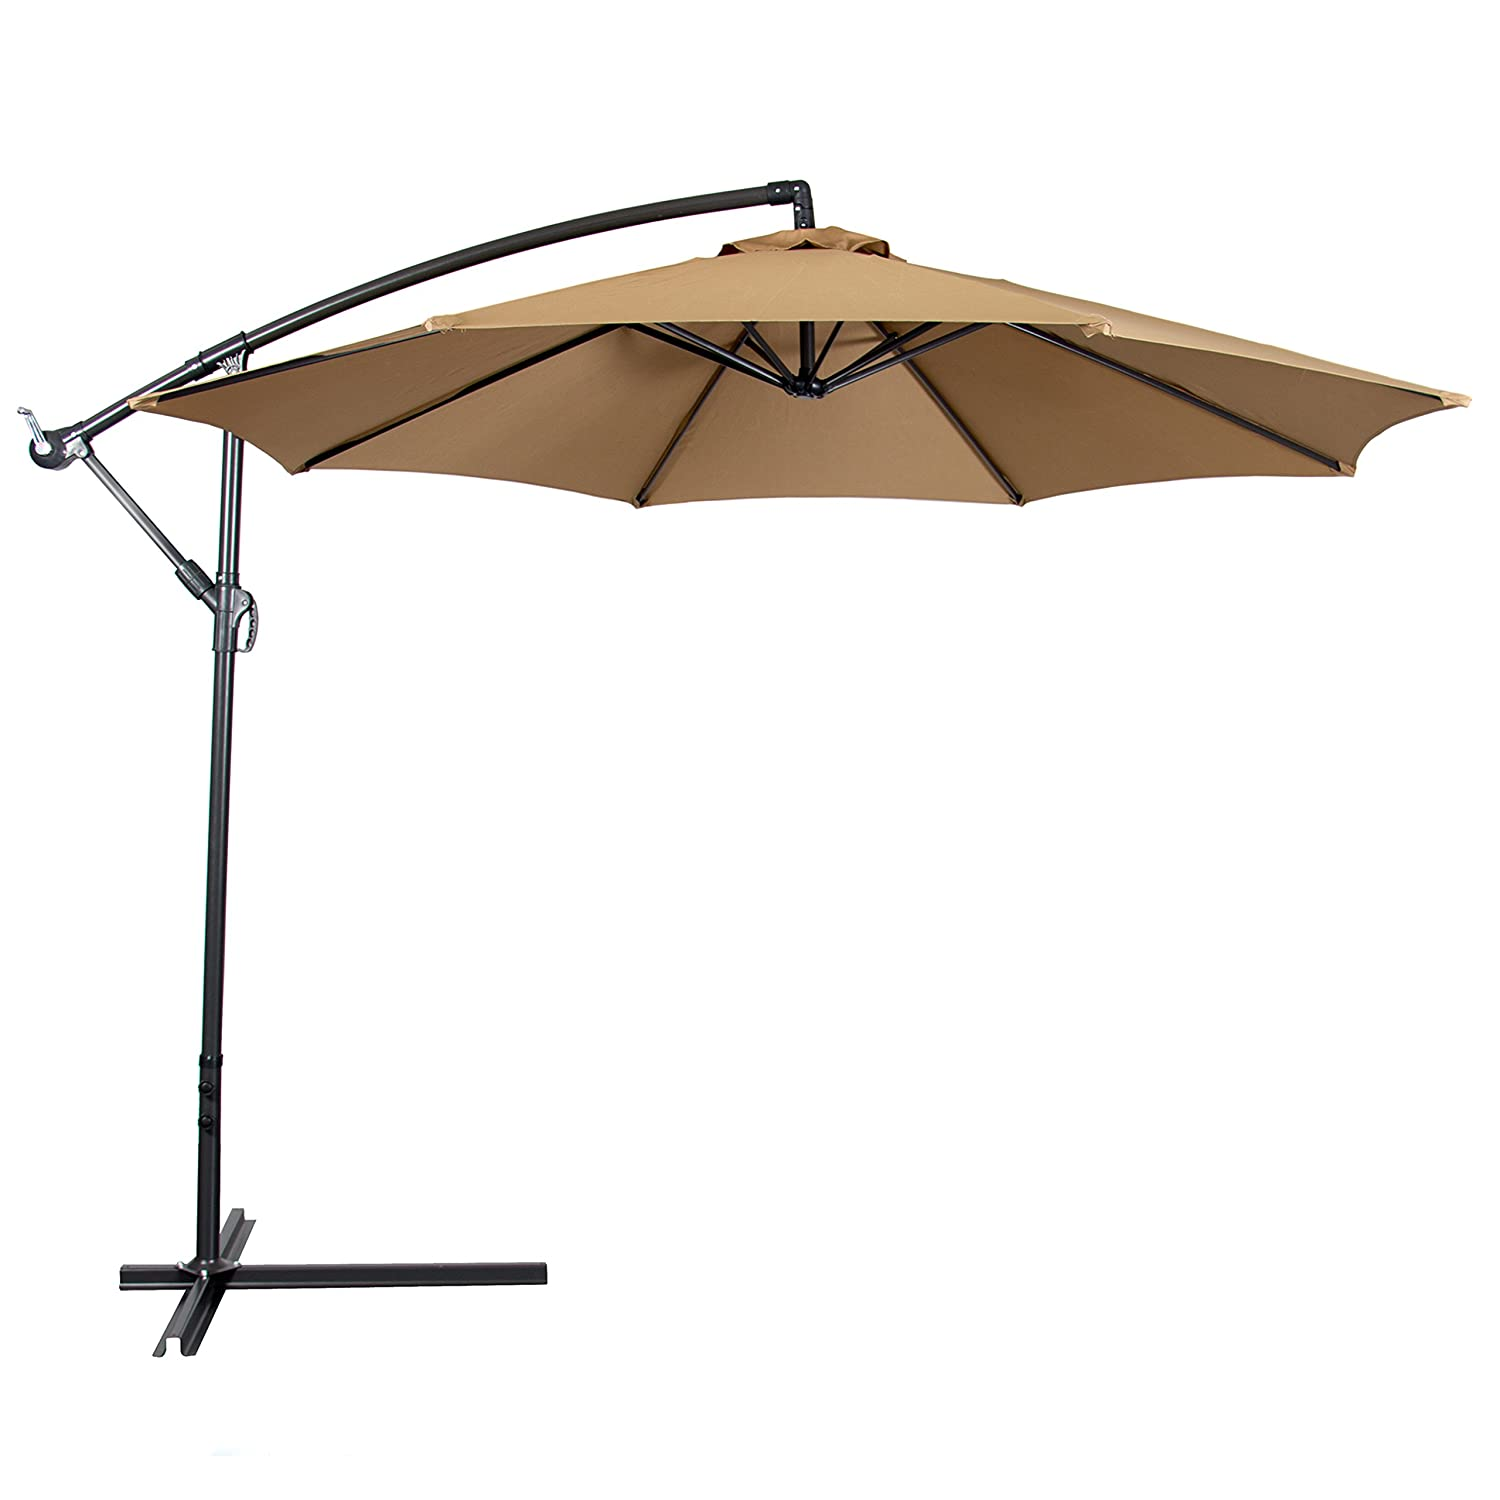 amazoncom best choice products offset 10 hanging outdoor market new tan patio umbrella beige patio lawn garden